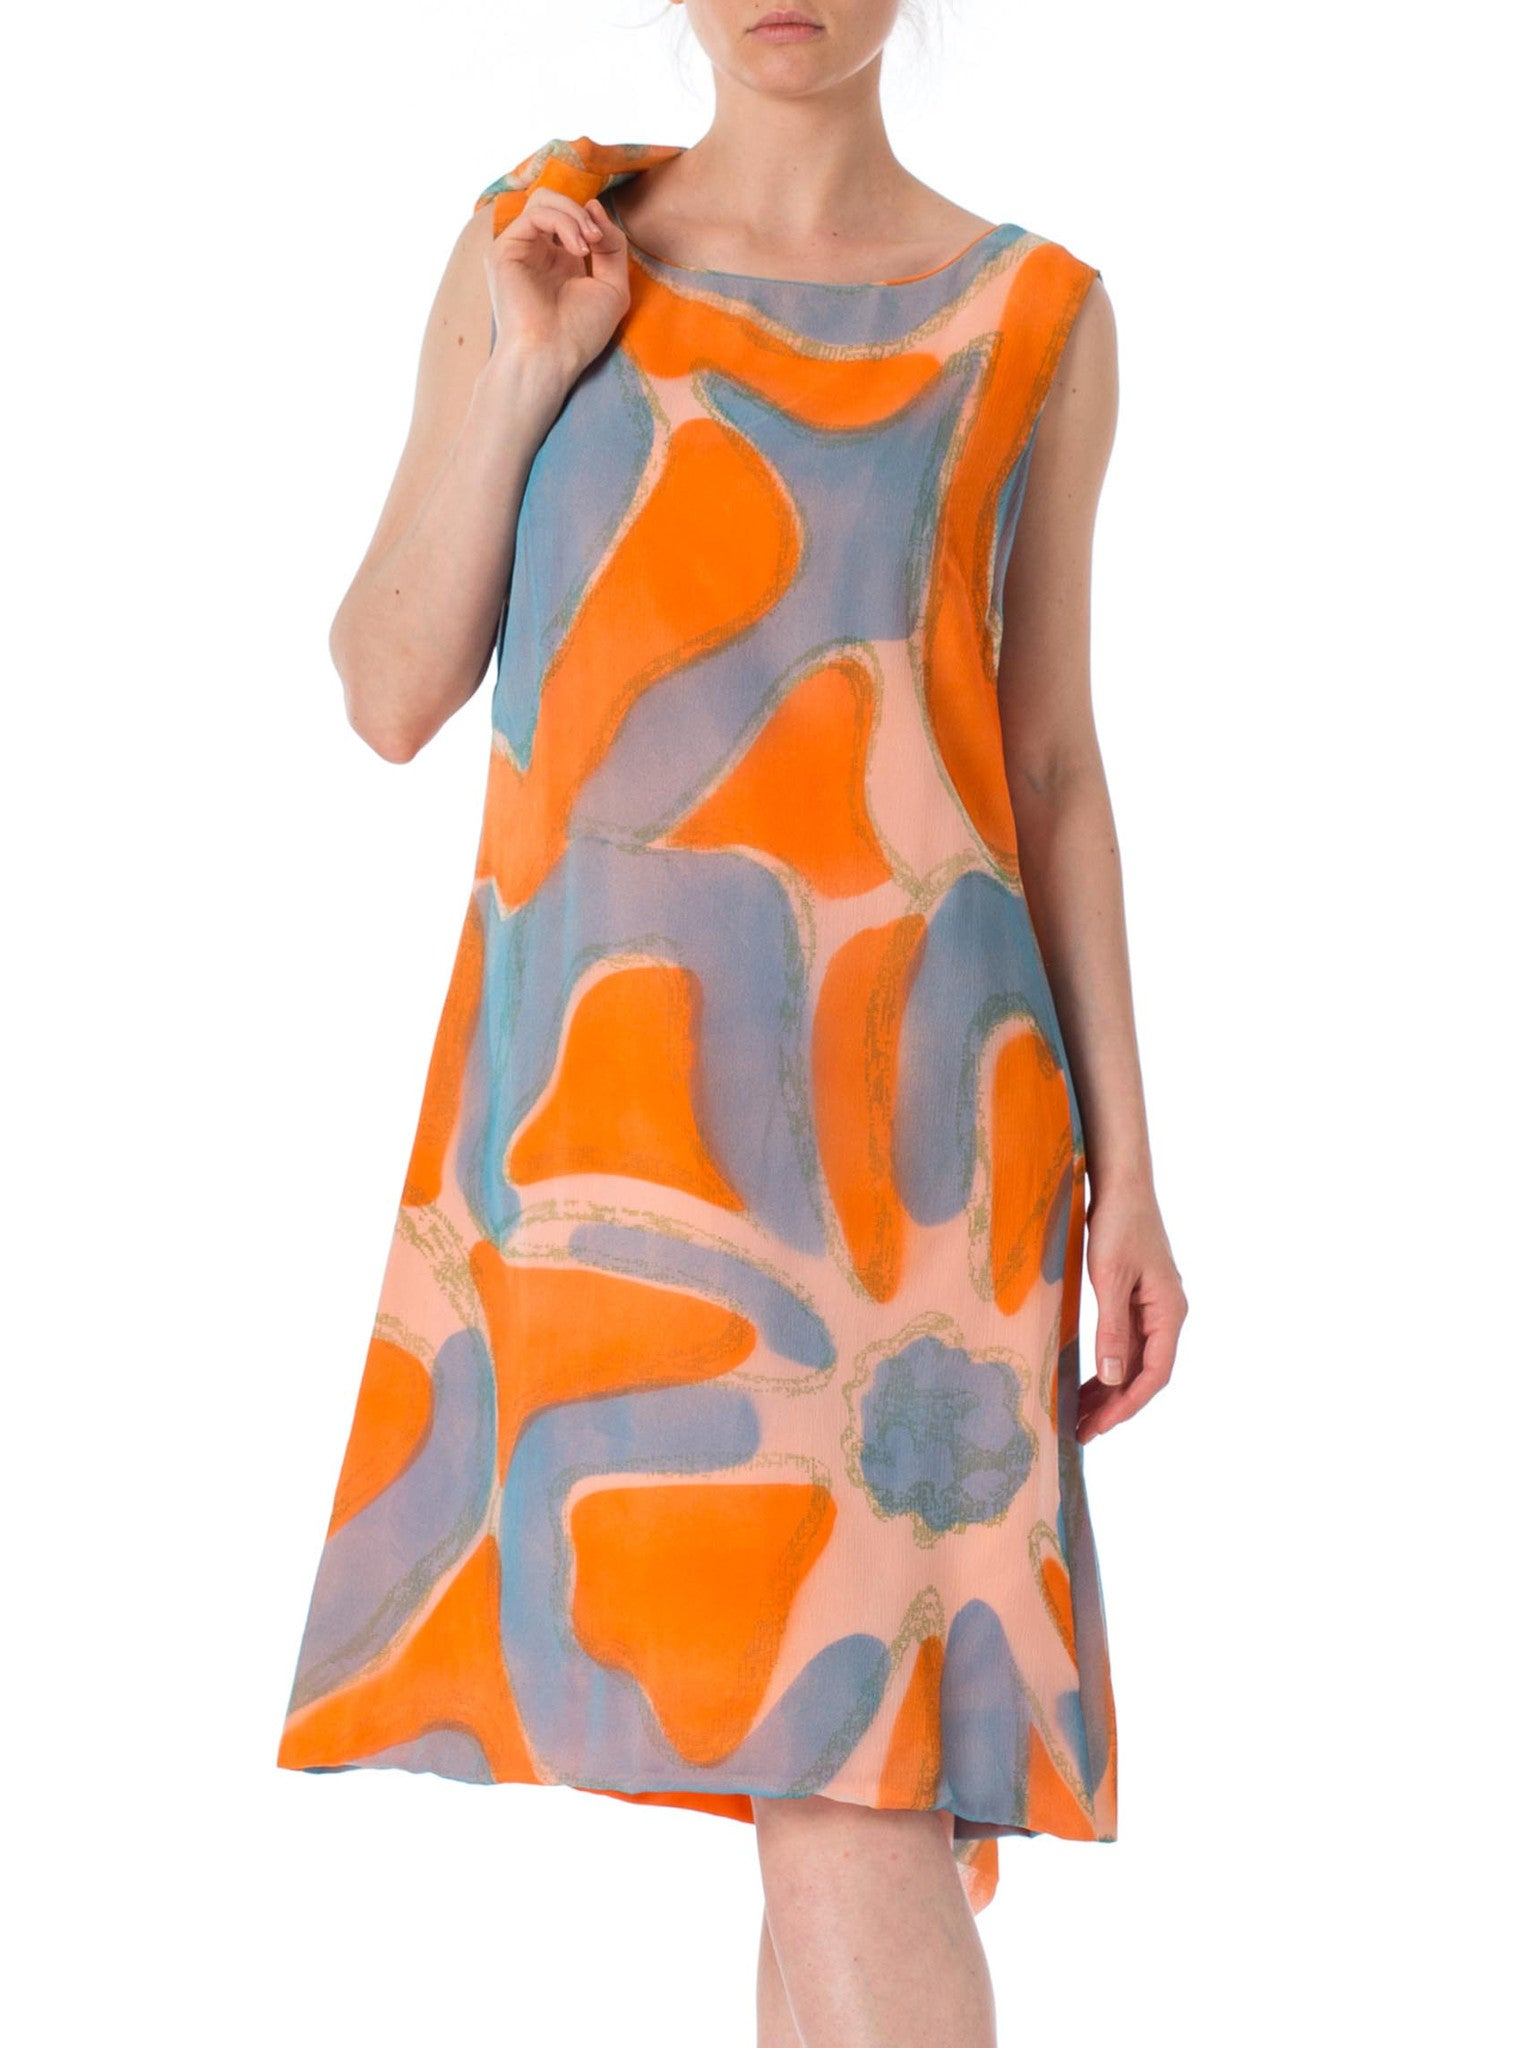 1960s MOD Blue and Orange Watercolor Abstract Print 2 Piece Chiffon Dress and Jacket